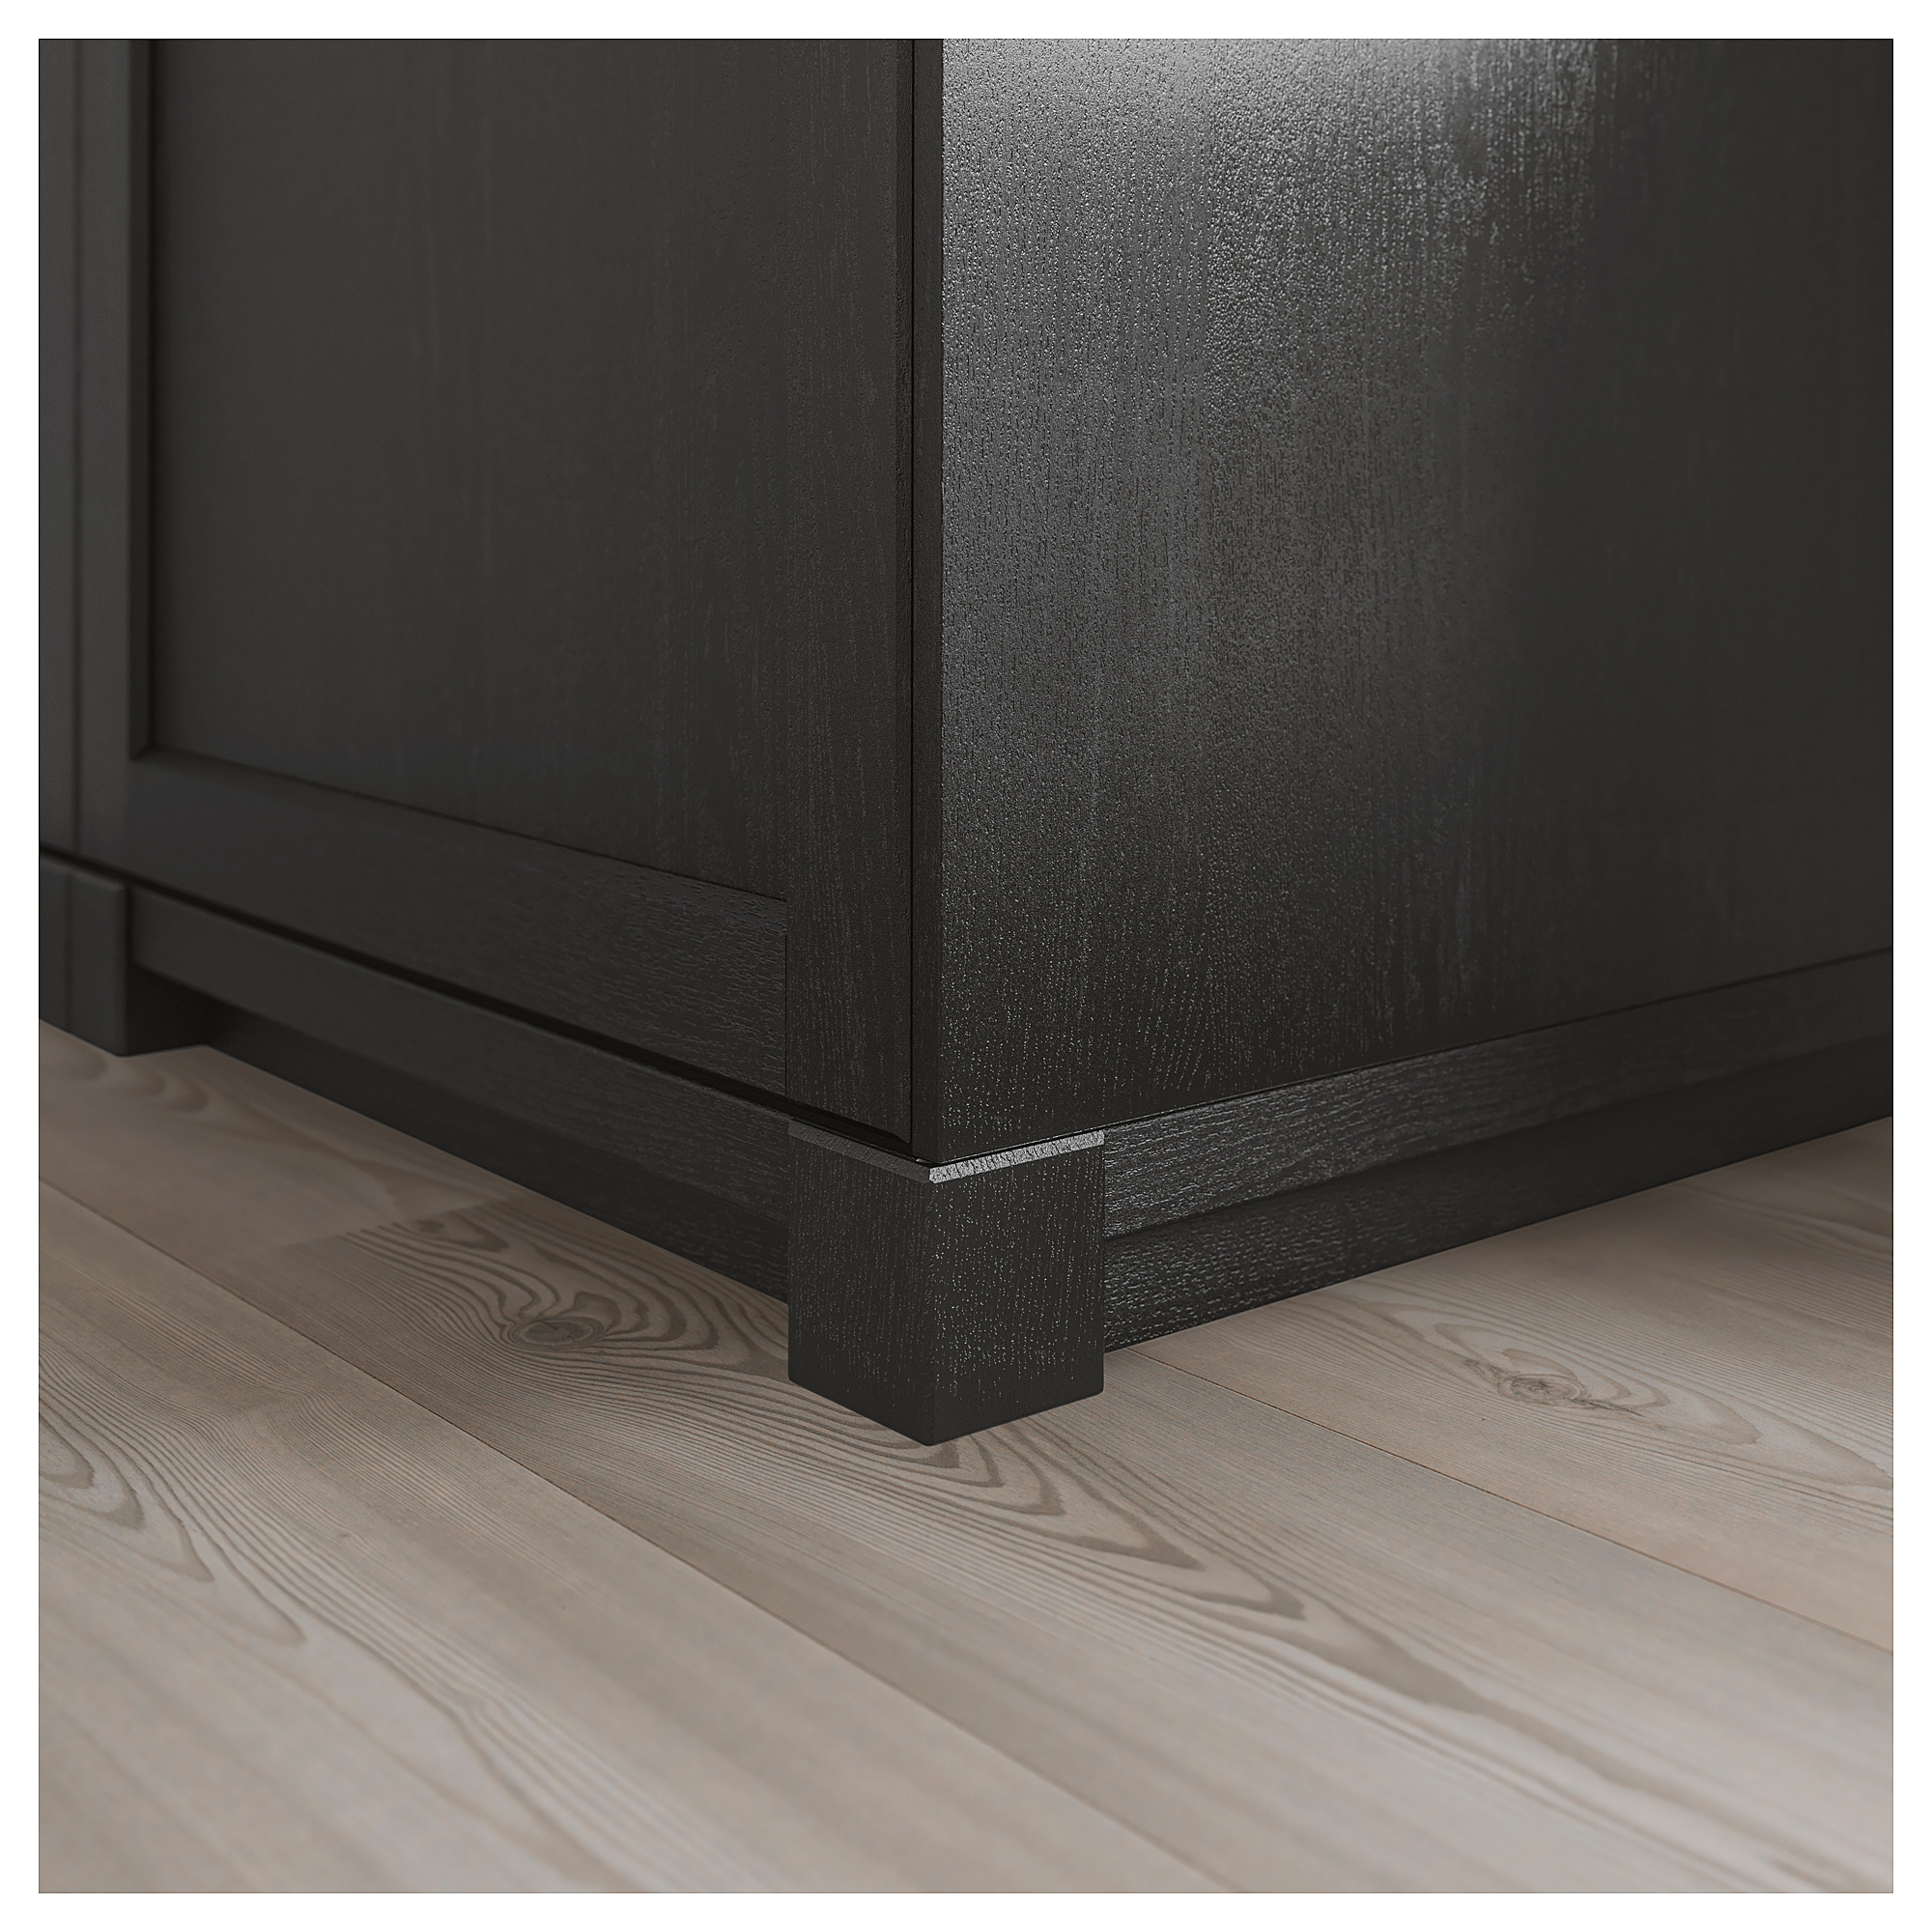 Best Lerhyttan Corner Leg For Decorative Plinth Black Stained 400 x 300